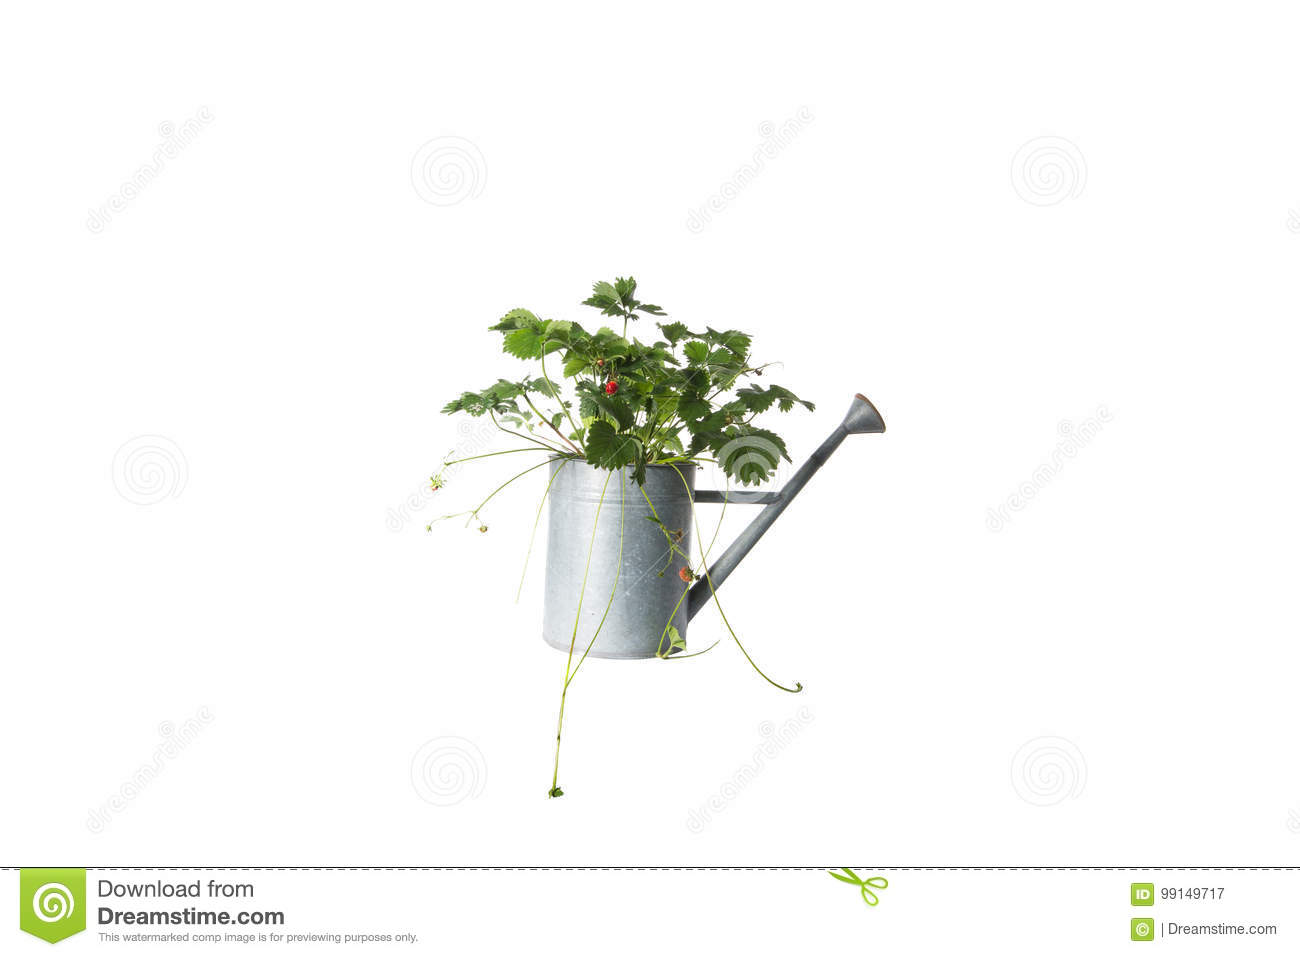 House Plant in watering can, plant isolated on white